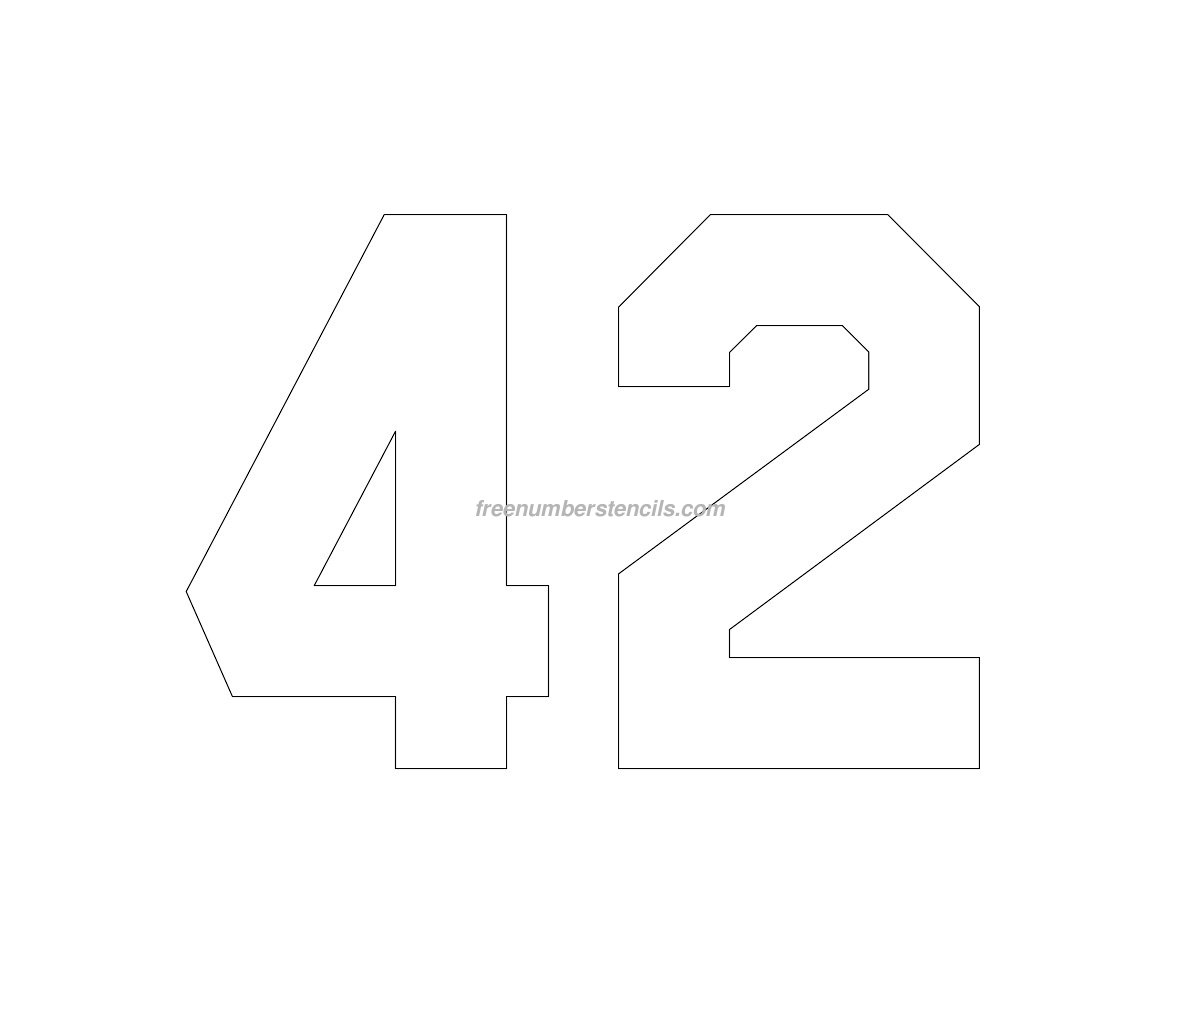 free number templates to print - free jersey printable 42 number stencil